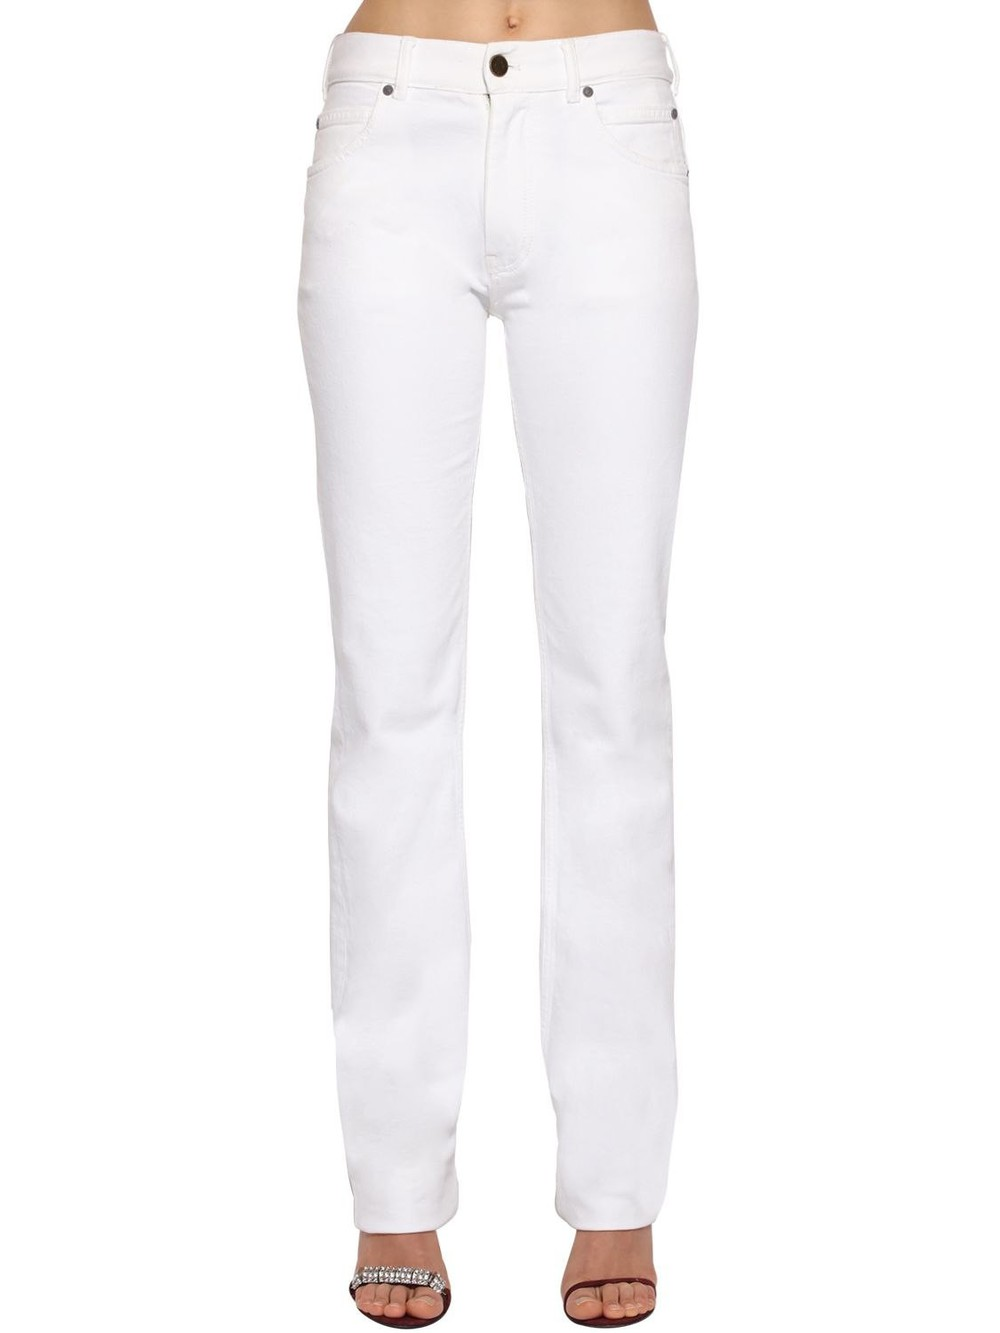 CALVIN KLEIN 205W39NYC Mid Rise Cotton Denim Jeans in white